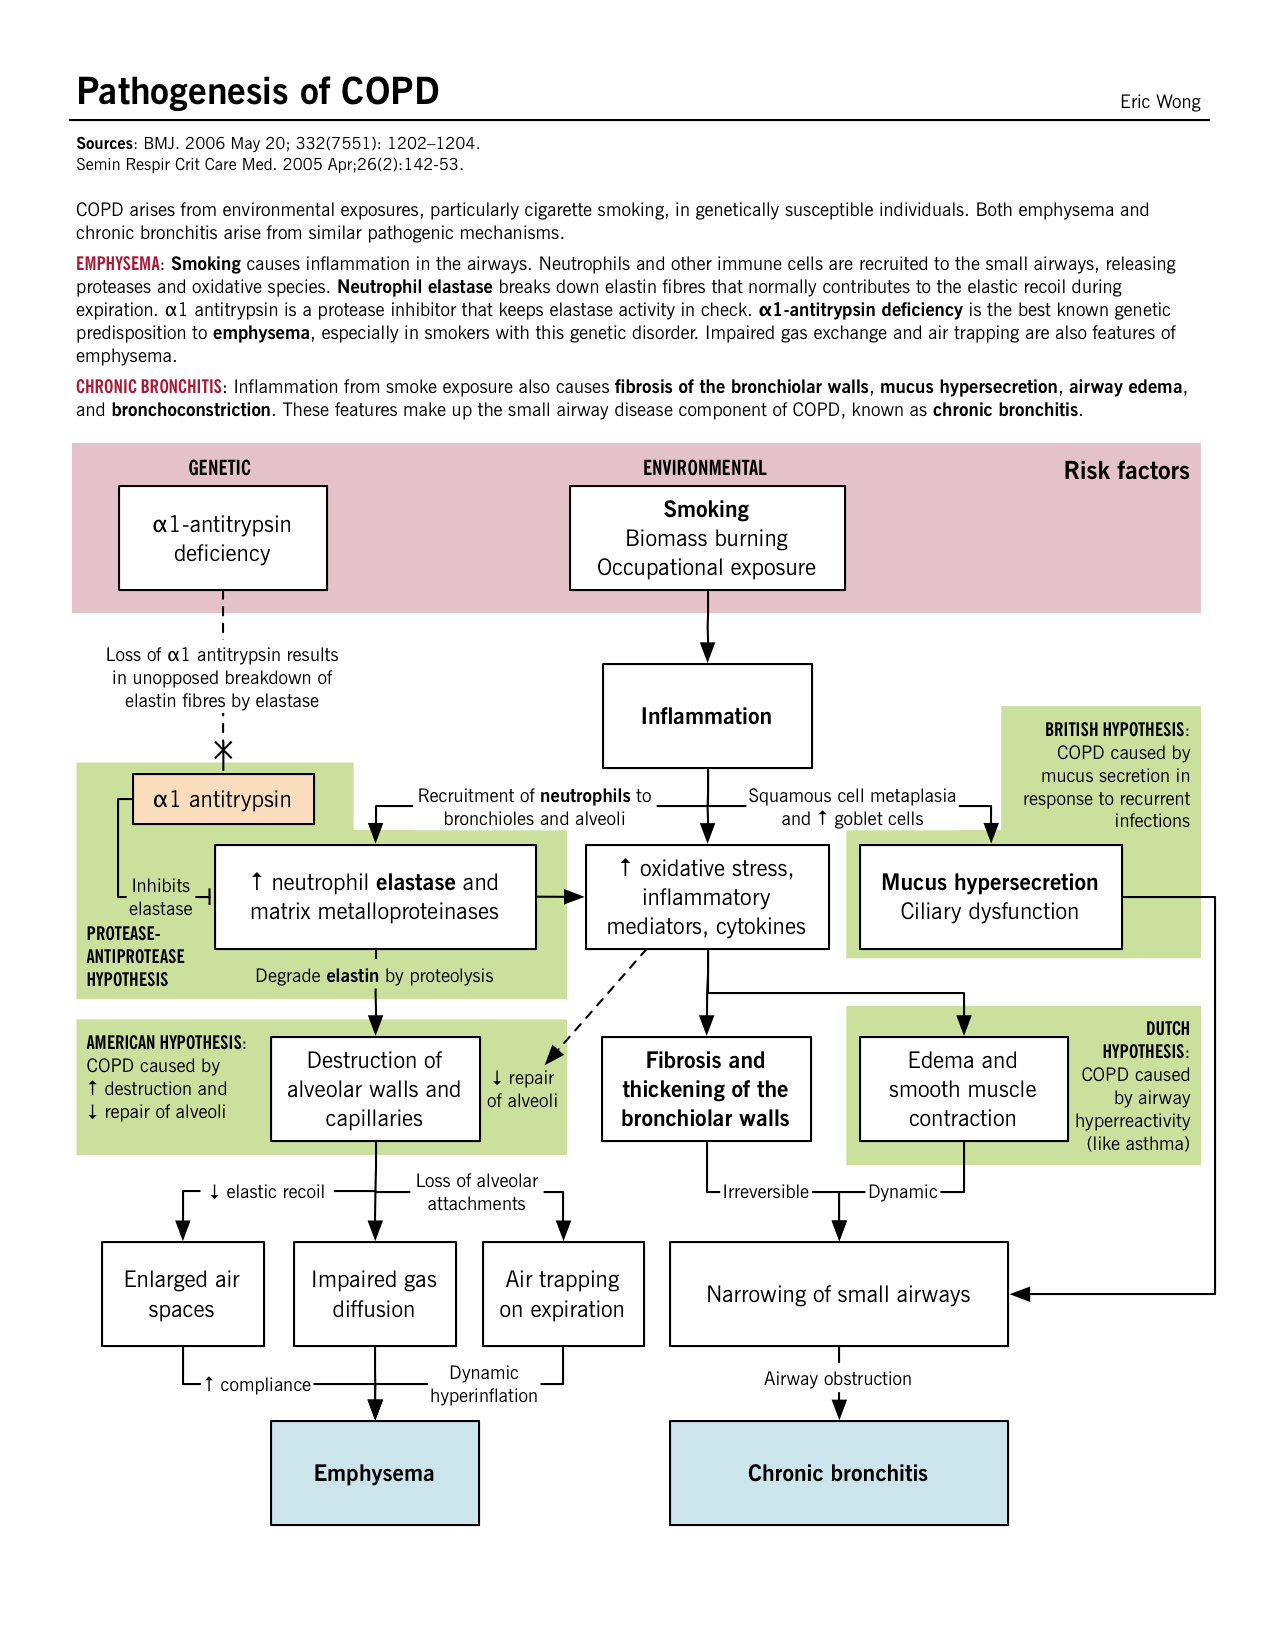 Pathogenesis of COPD | McMaster Pathophysiology Review ...